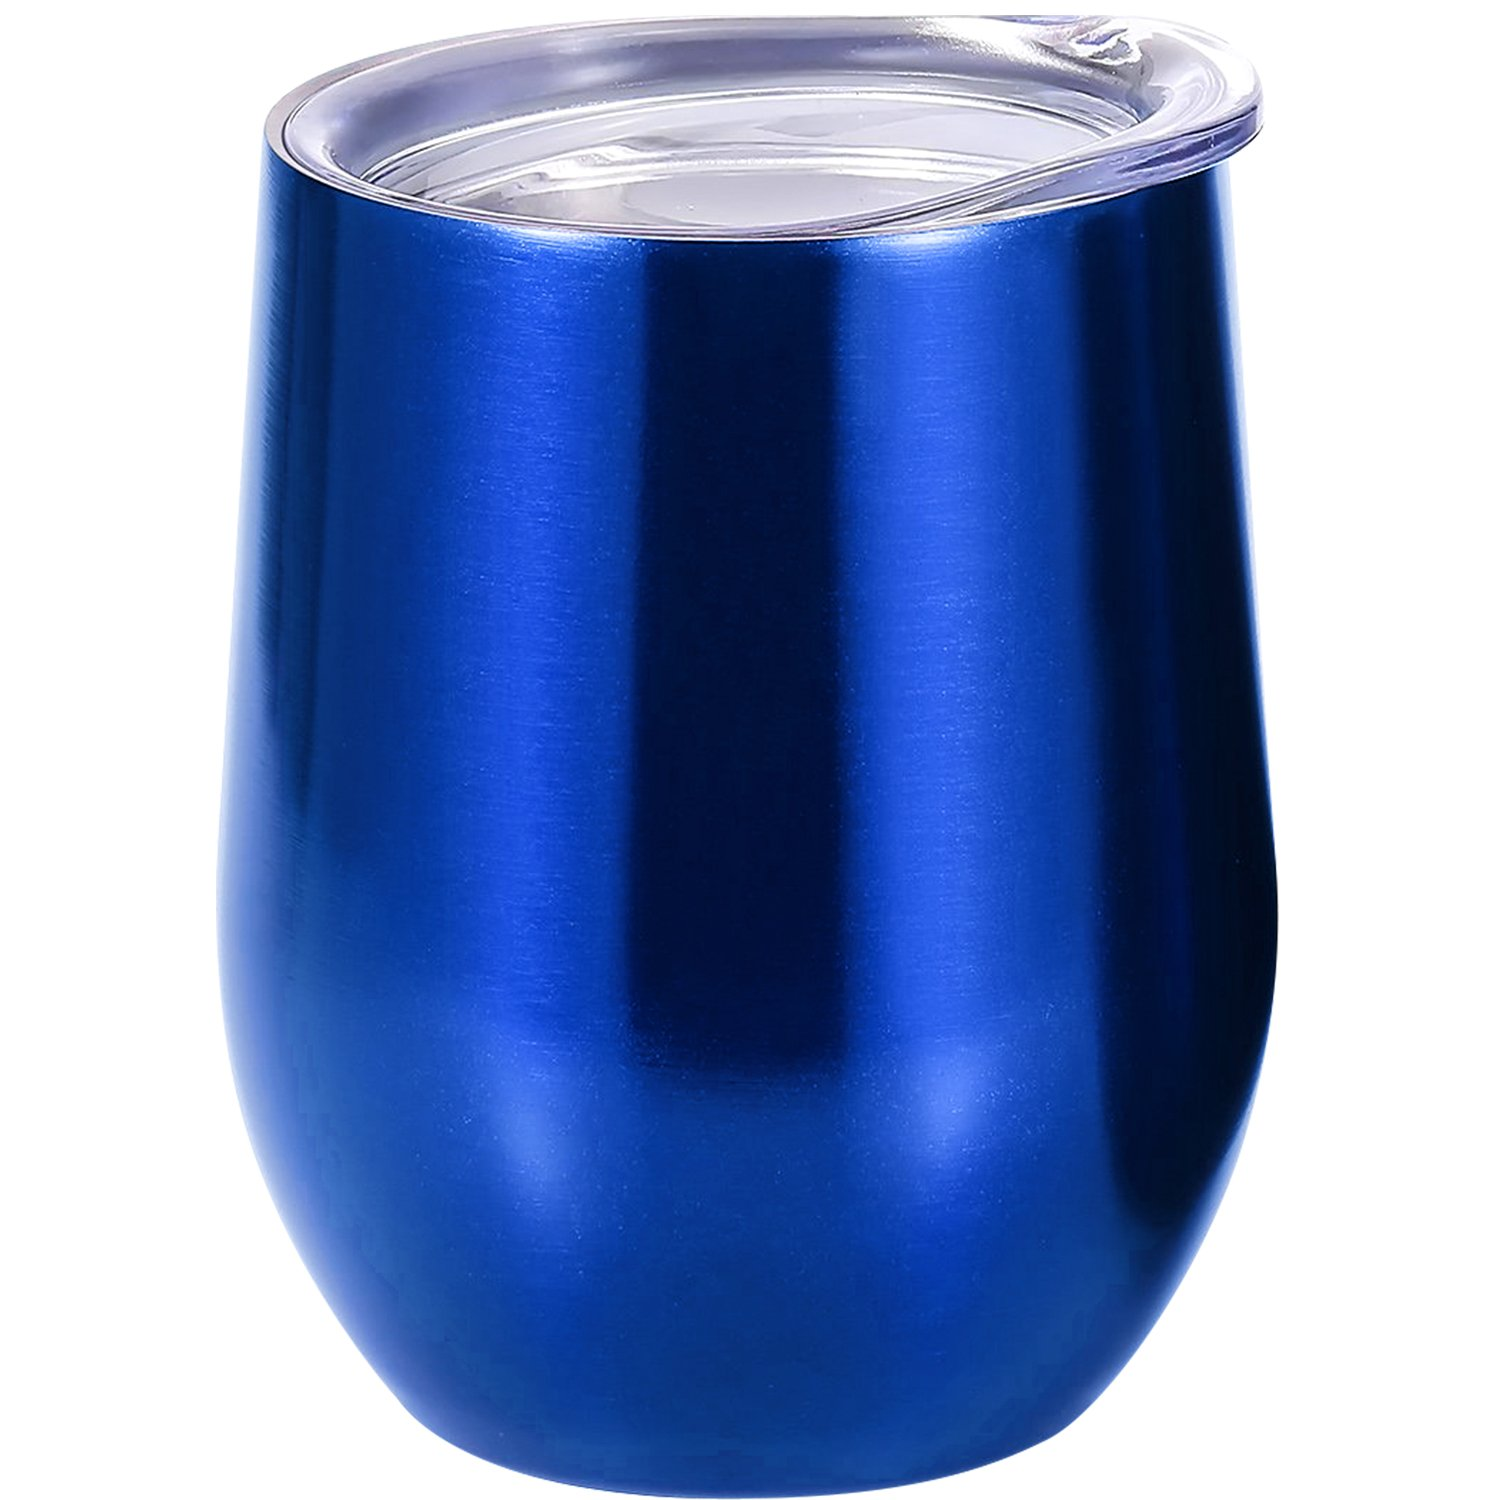 Skylety 12 oz Double-insulated Stemless Glass Wine Tumbler, Stainless Steel Tumbler Cup with Lids for Coffee, Drinks, Champagne, Cocktails (Transparent Blue)